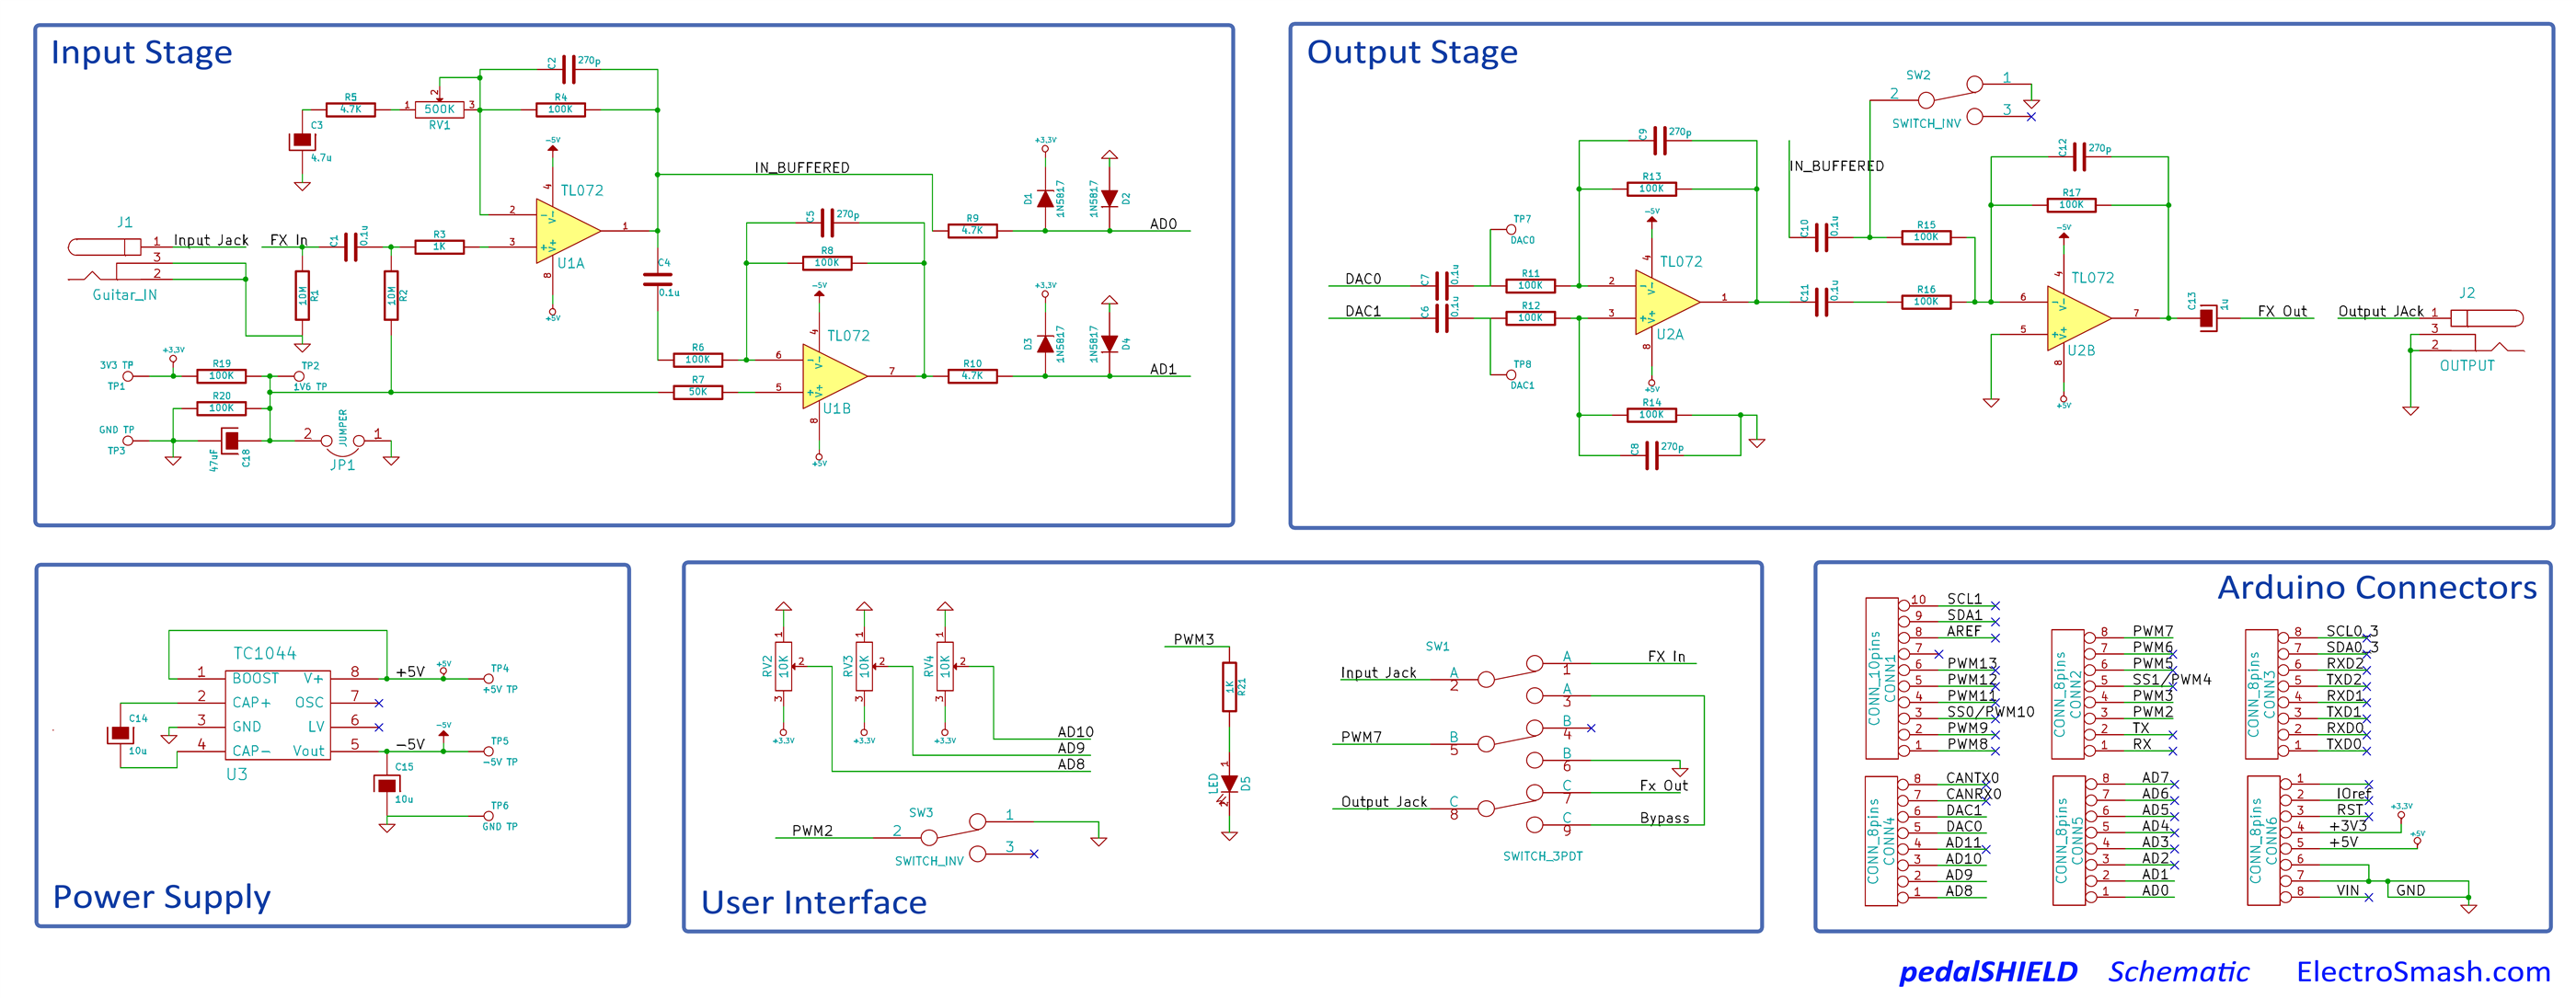 pedalboard power wiring diagram image 3